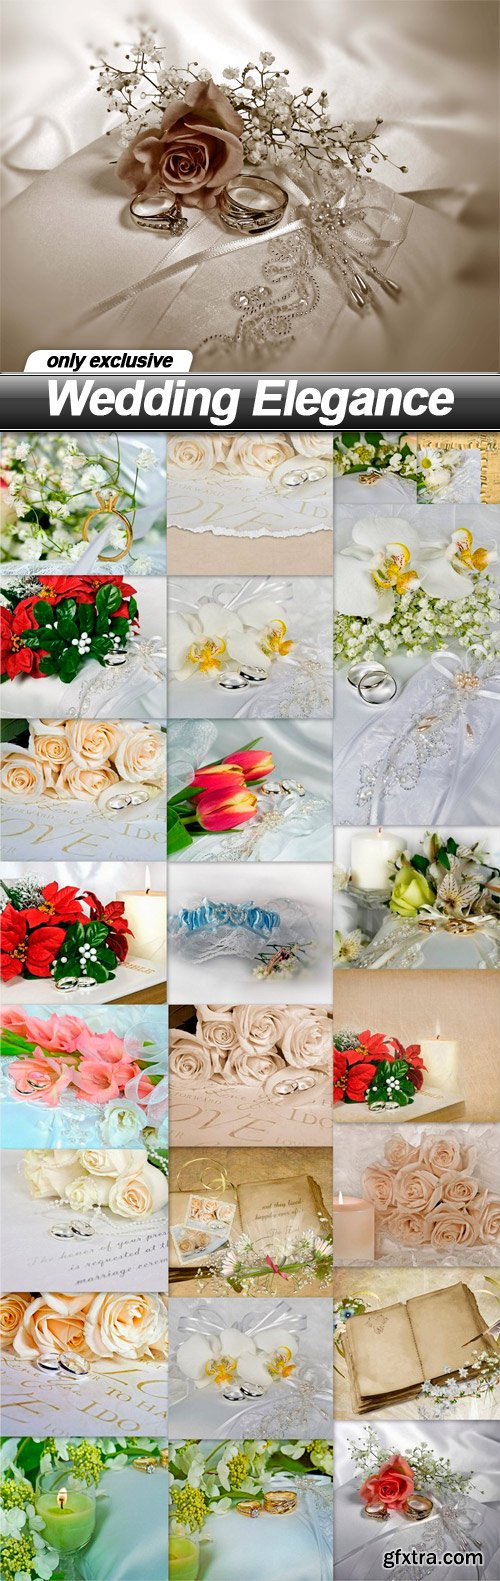 Wedding Elegance - 25 UHQ JPEG